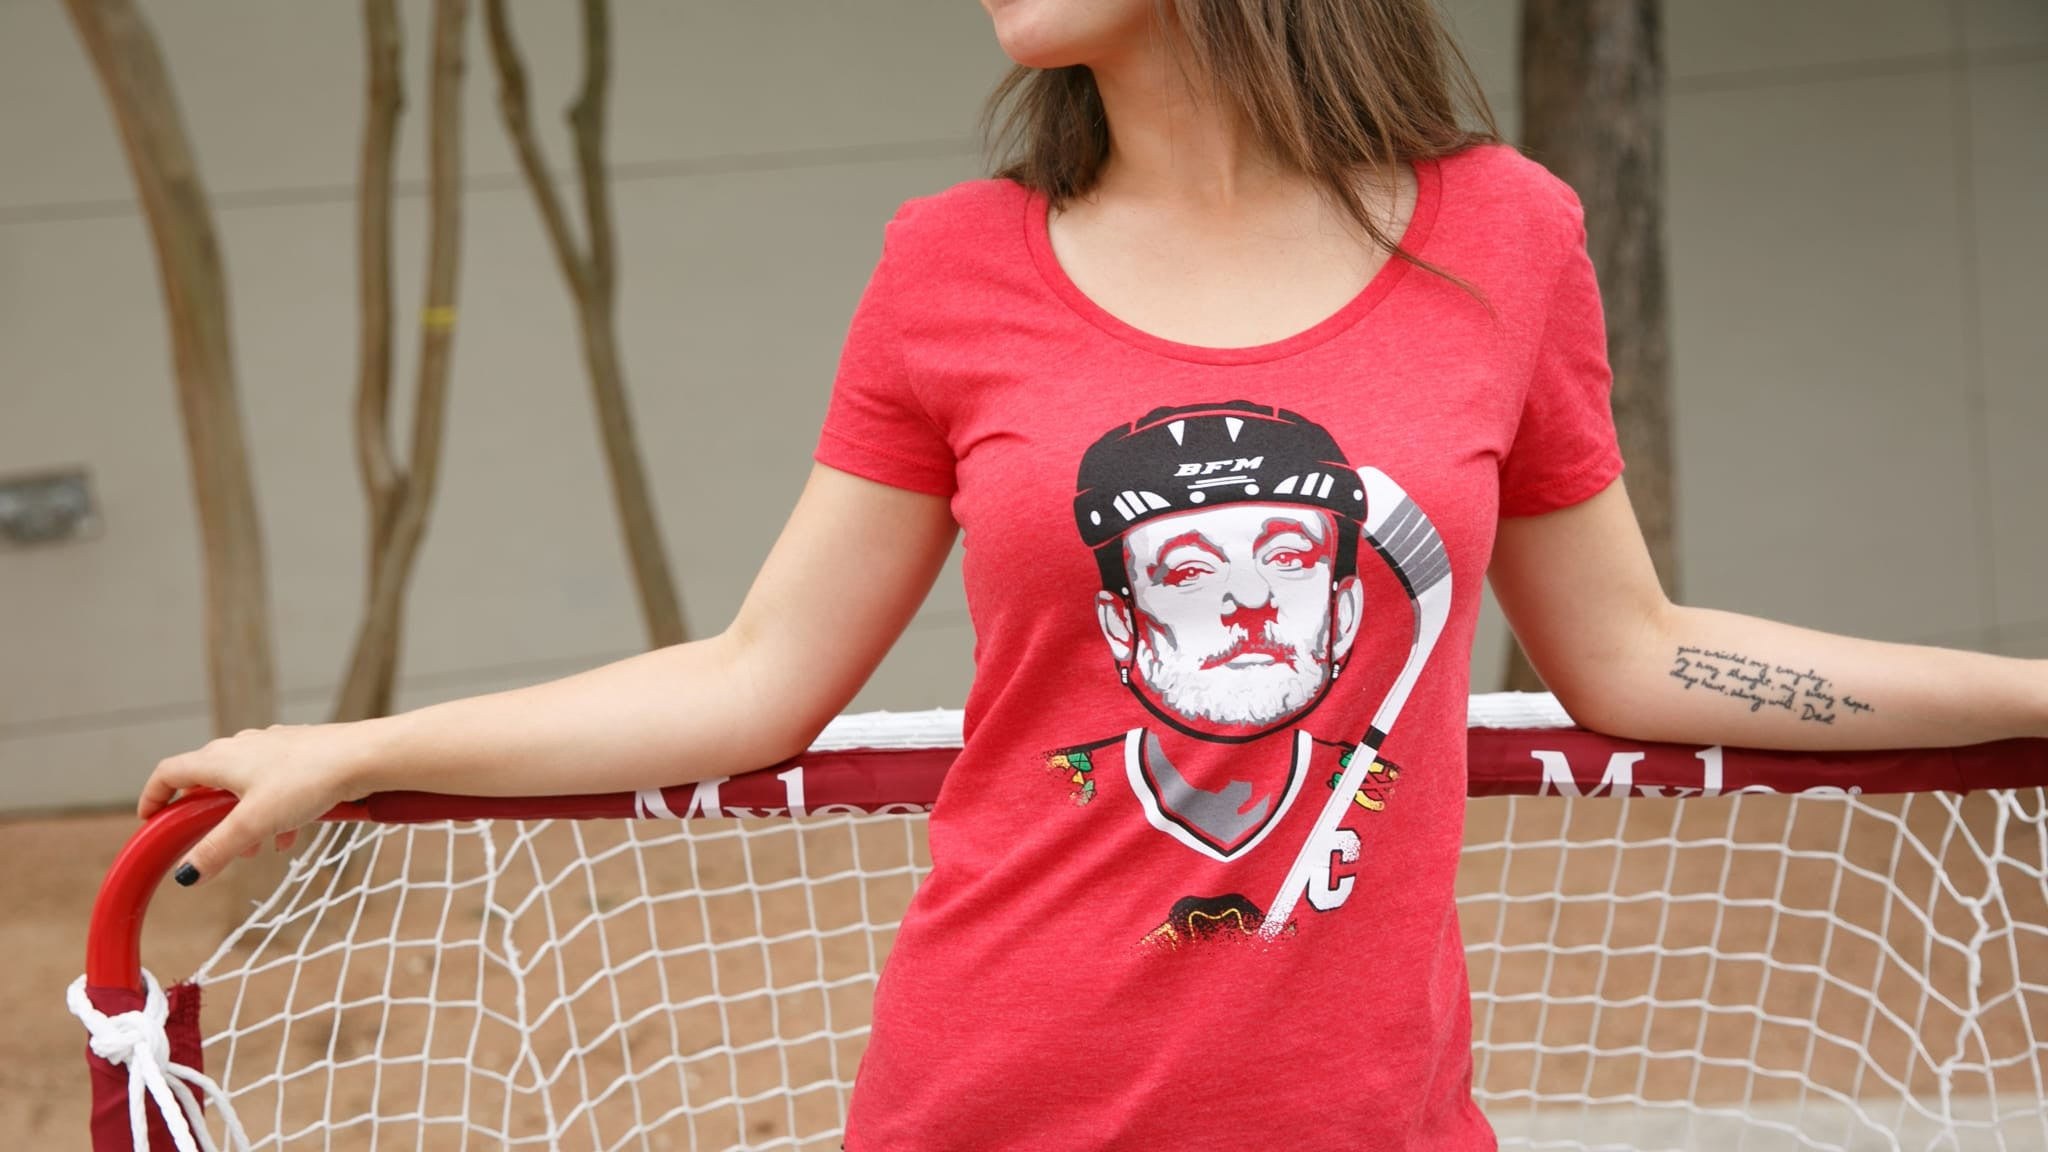 ef641273595 Women s BFM Chicago Blackhawks T-Shirt – The Chivery